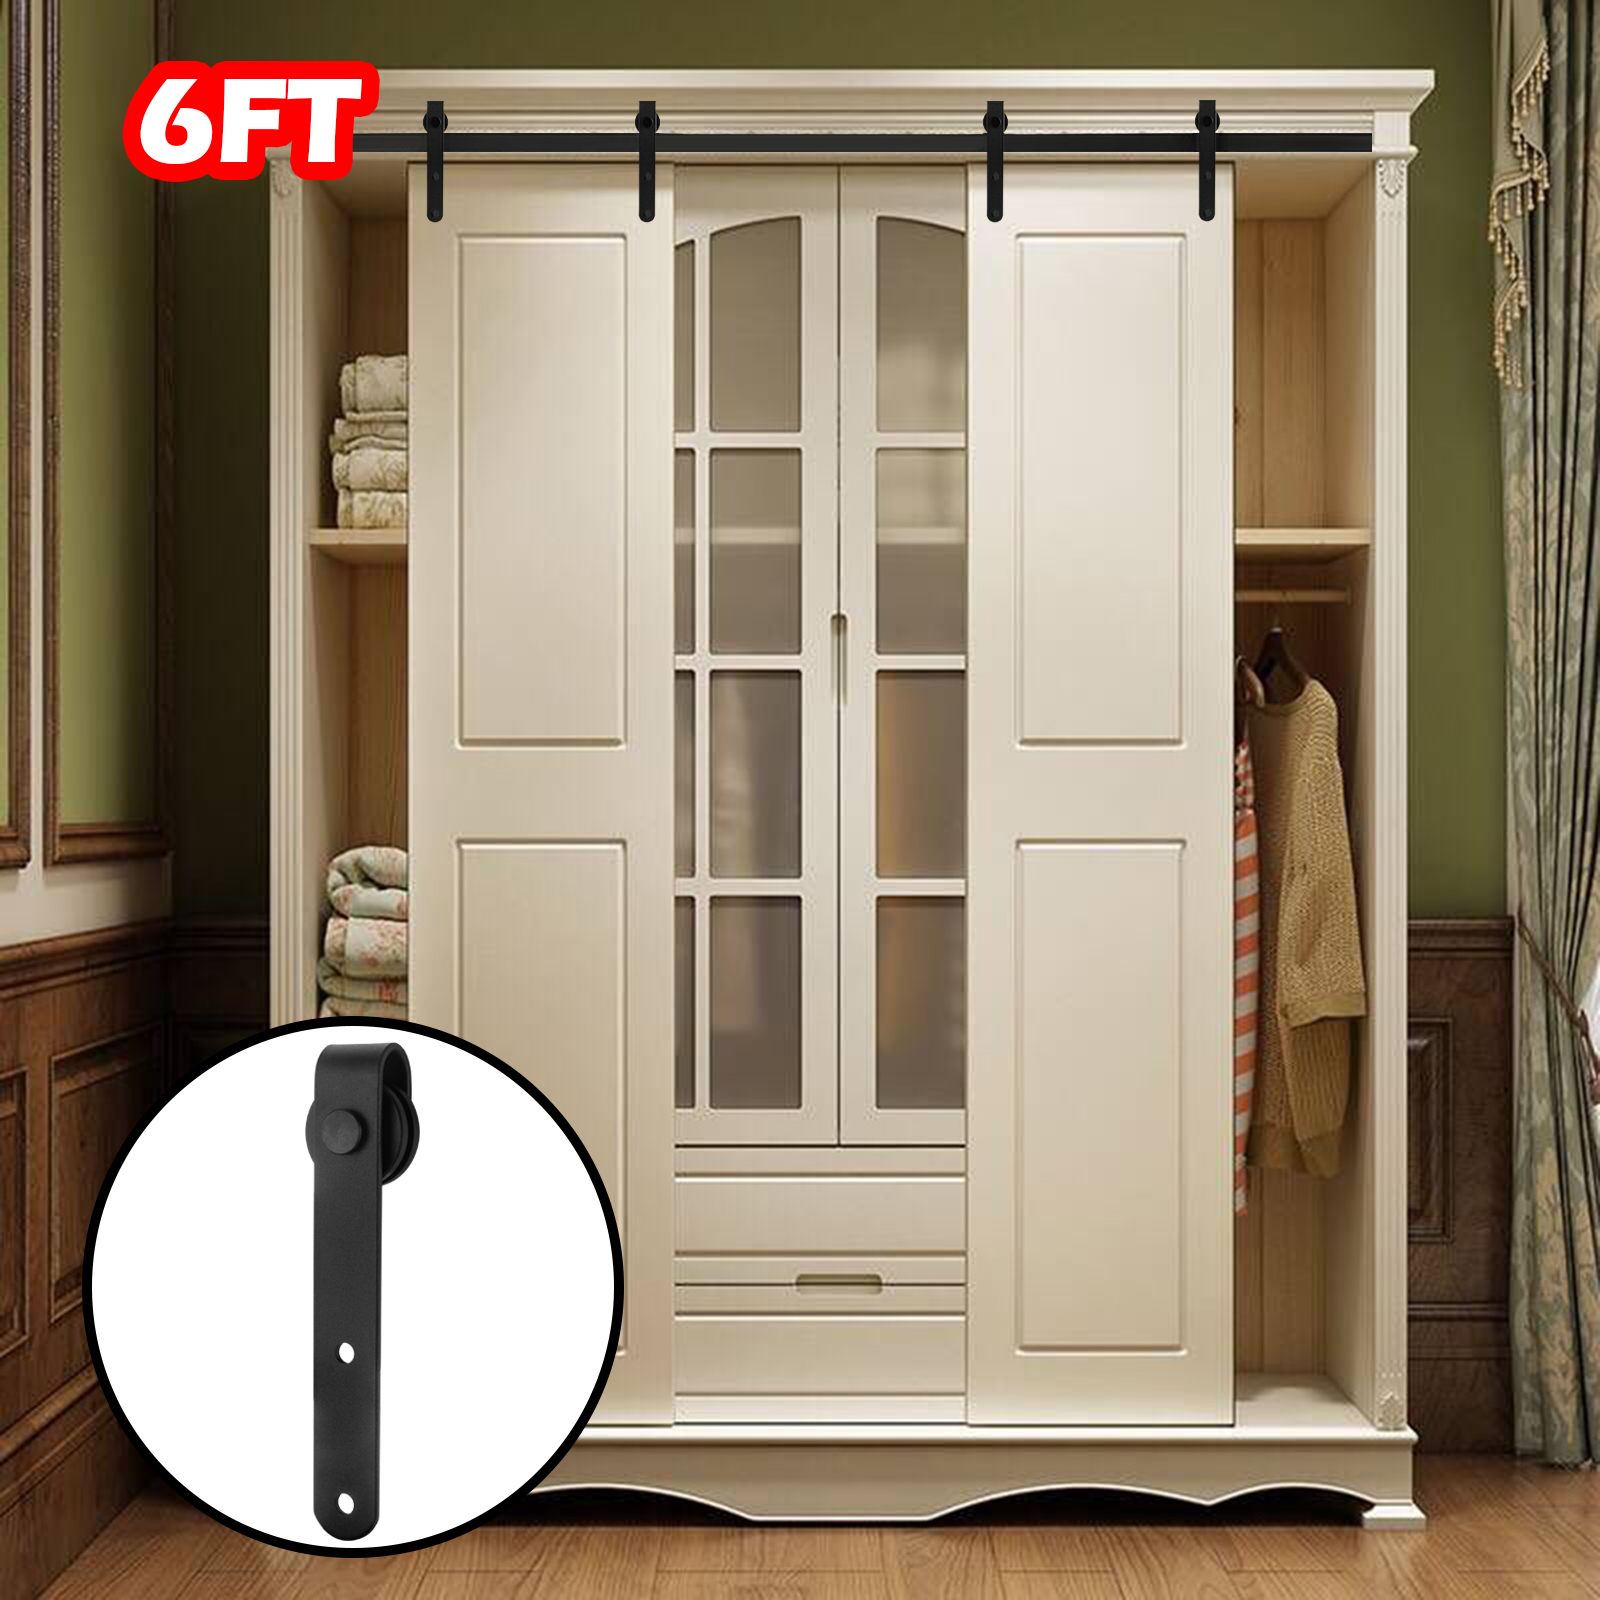 FR Space-Saving 6 FT Modern Door Hardware Closet Set Antique Style Sliding Track Iron Closet Track Kit Bypass Wood Roller Color: Black